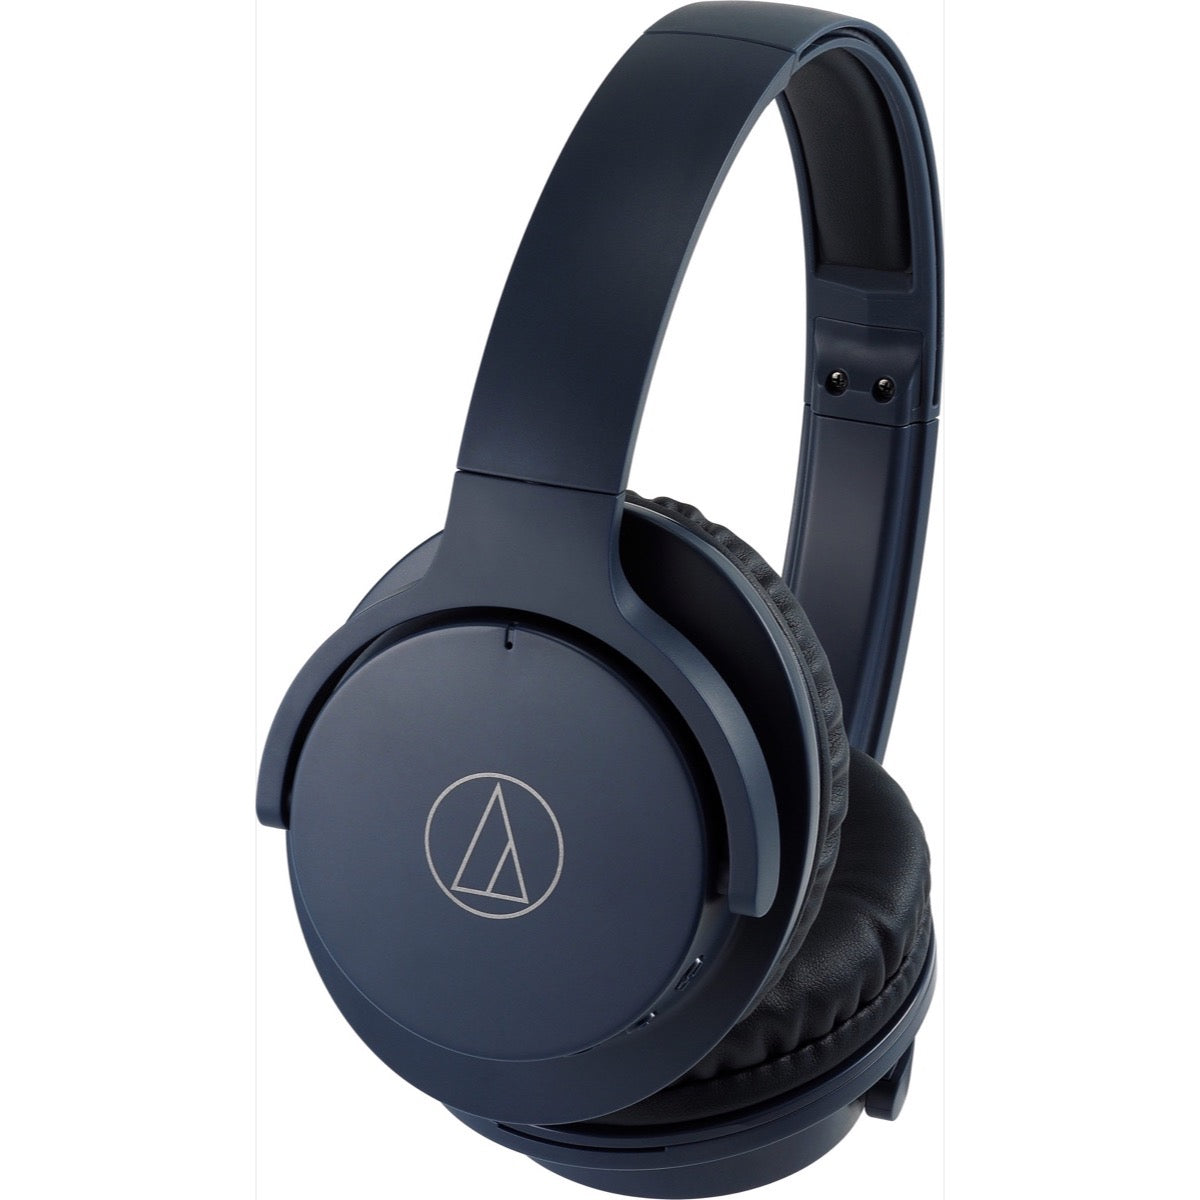 Audio-Technica ATH-ANC500BT Noise-Cancelling Headphones, Navy Blue